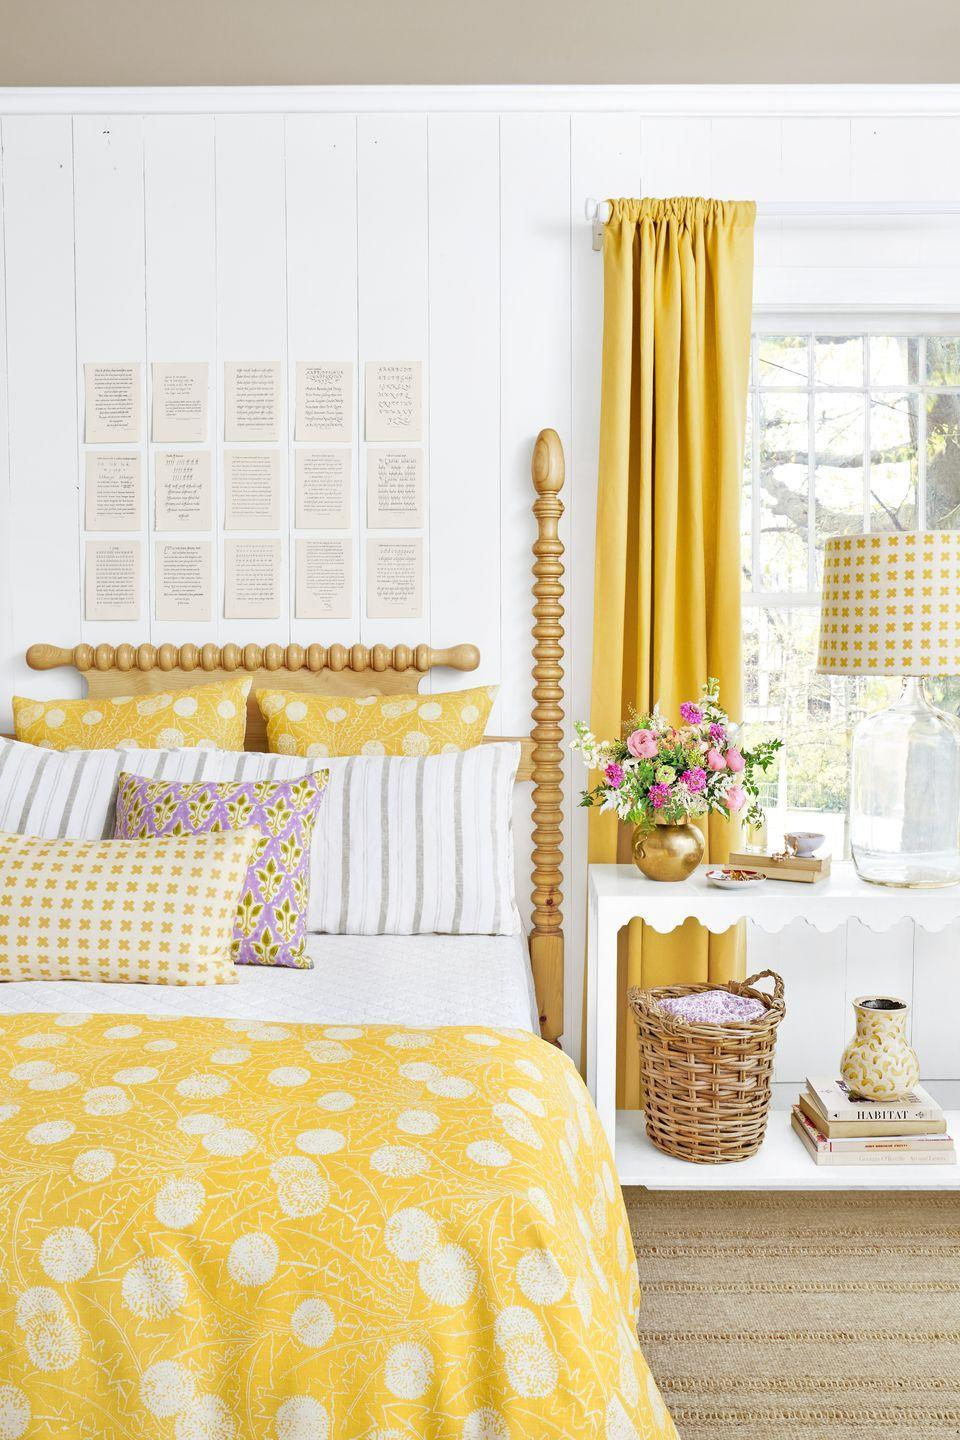 <p>Sunny and cheery, adding bright yellow to the bedroom is a shortcut to a space that makes you smile. Go with a warm, buttery shade and skip the neon. </p>